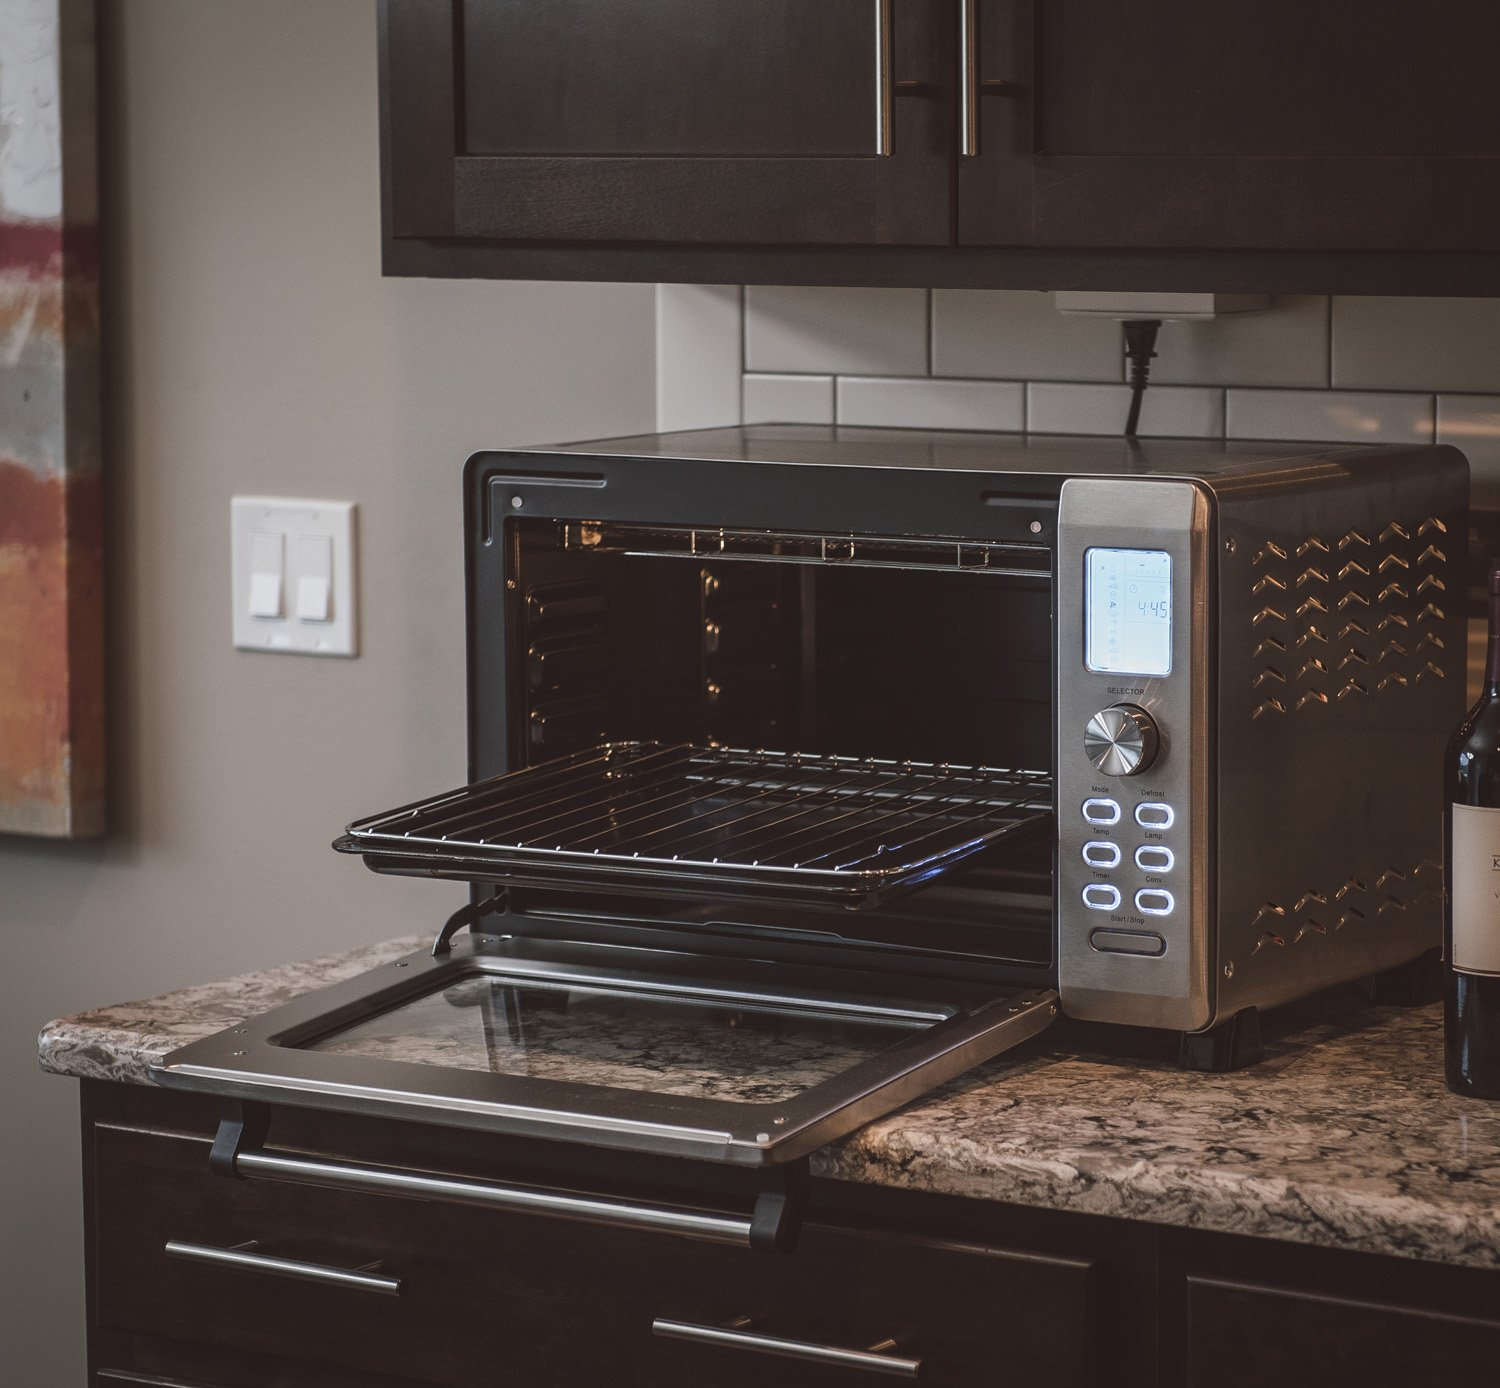 oven infrared inaflash toaster flashxpress panasonic review giveaway and